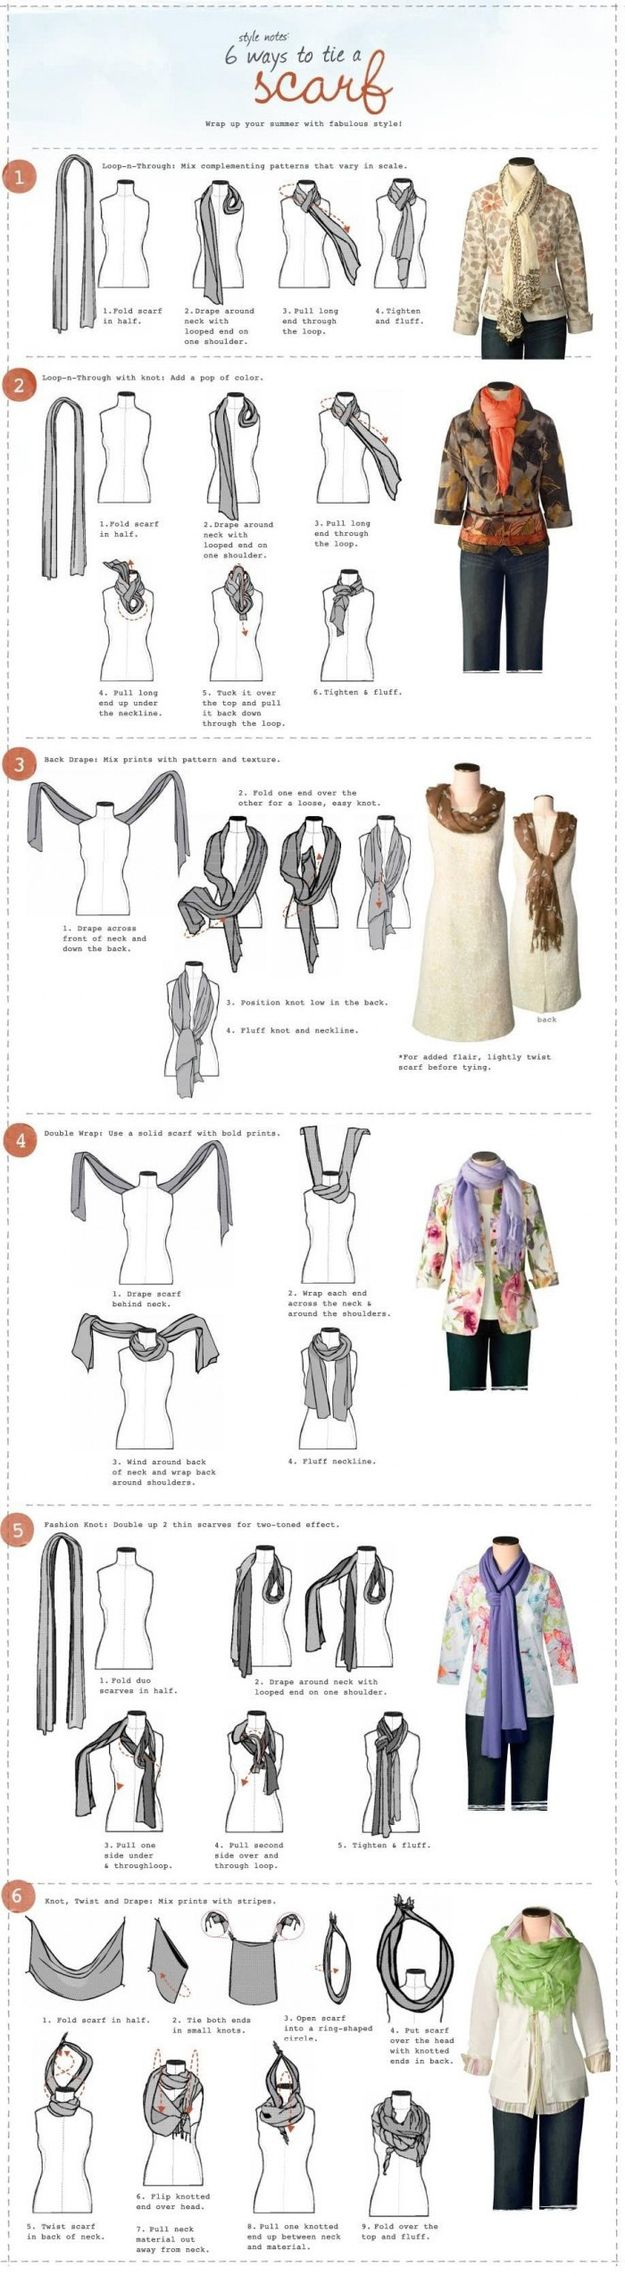 how to tie a scarf diagram scarves and 21st rh pinterest com Scarf Tying Printable Flyer Latest Scarf Tying